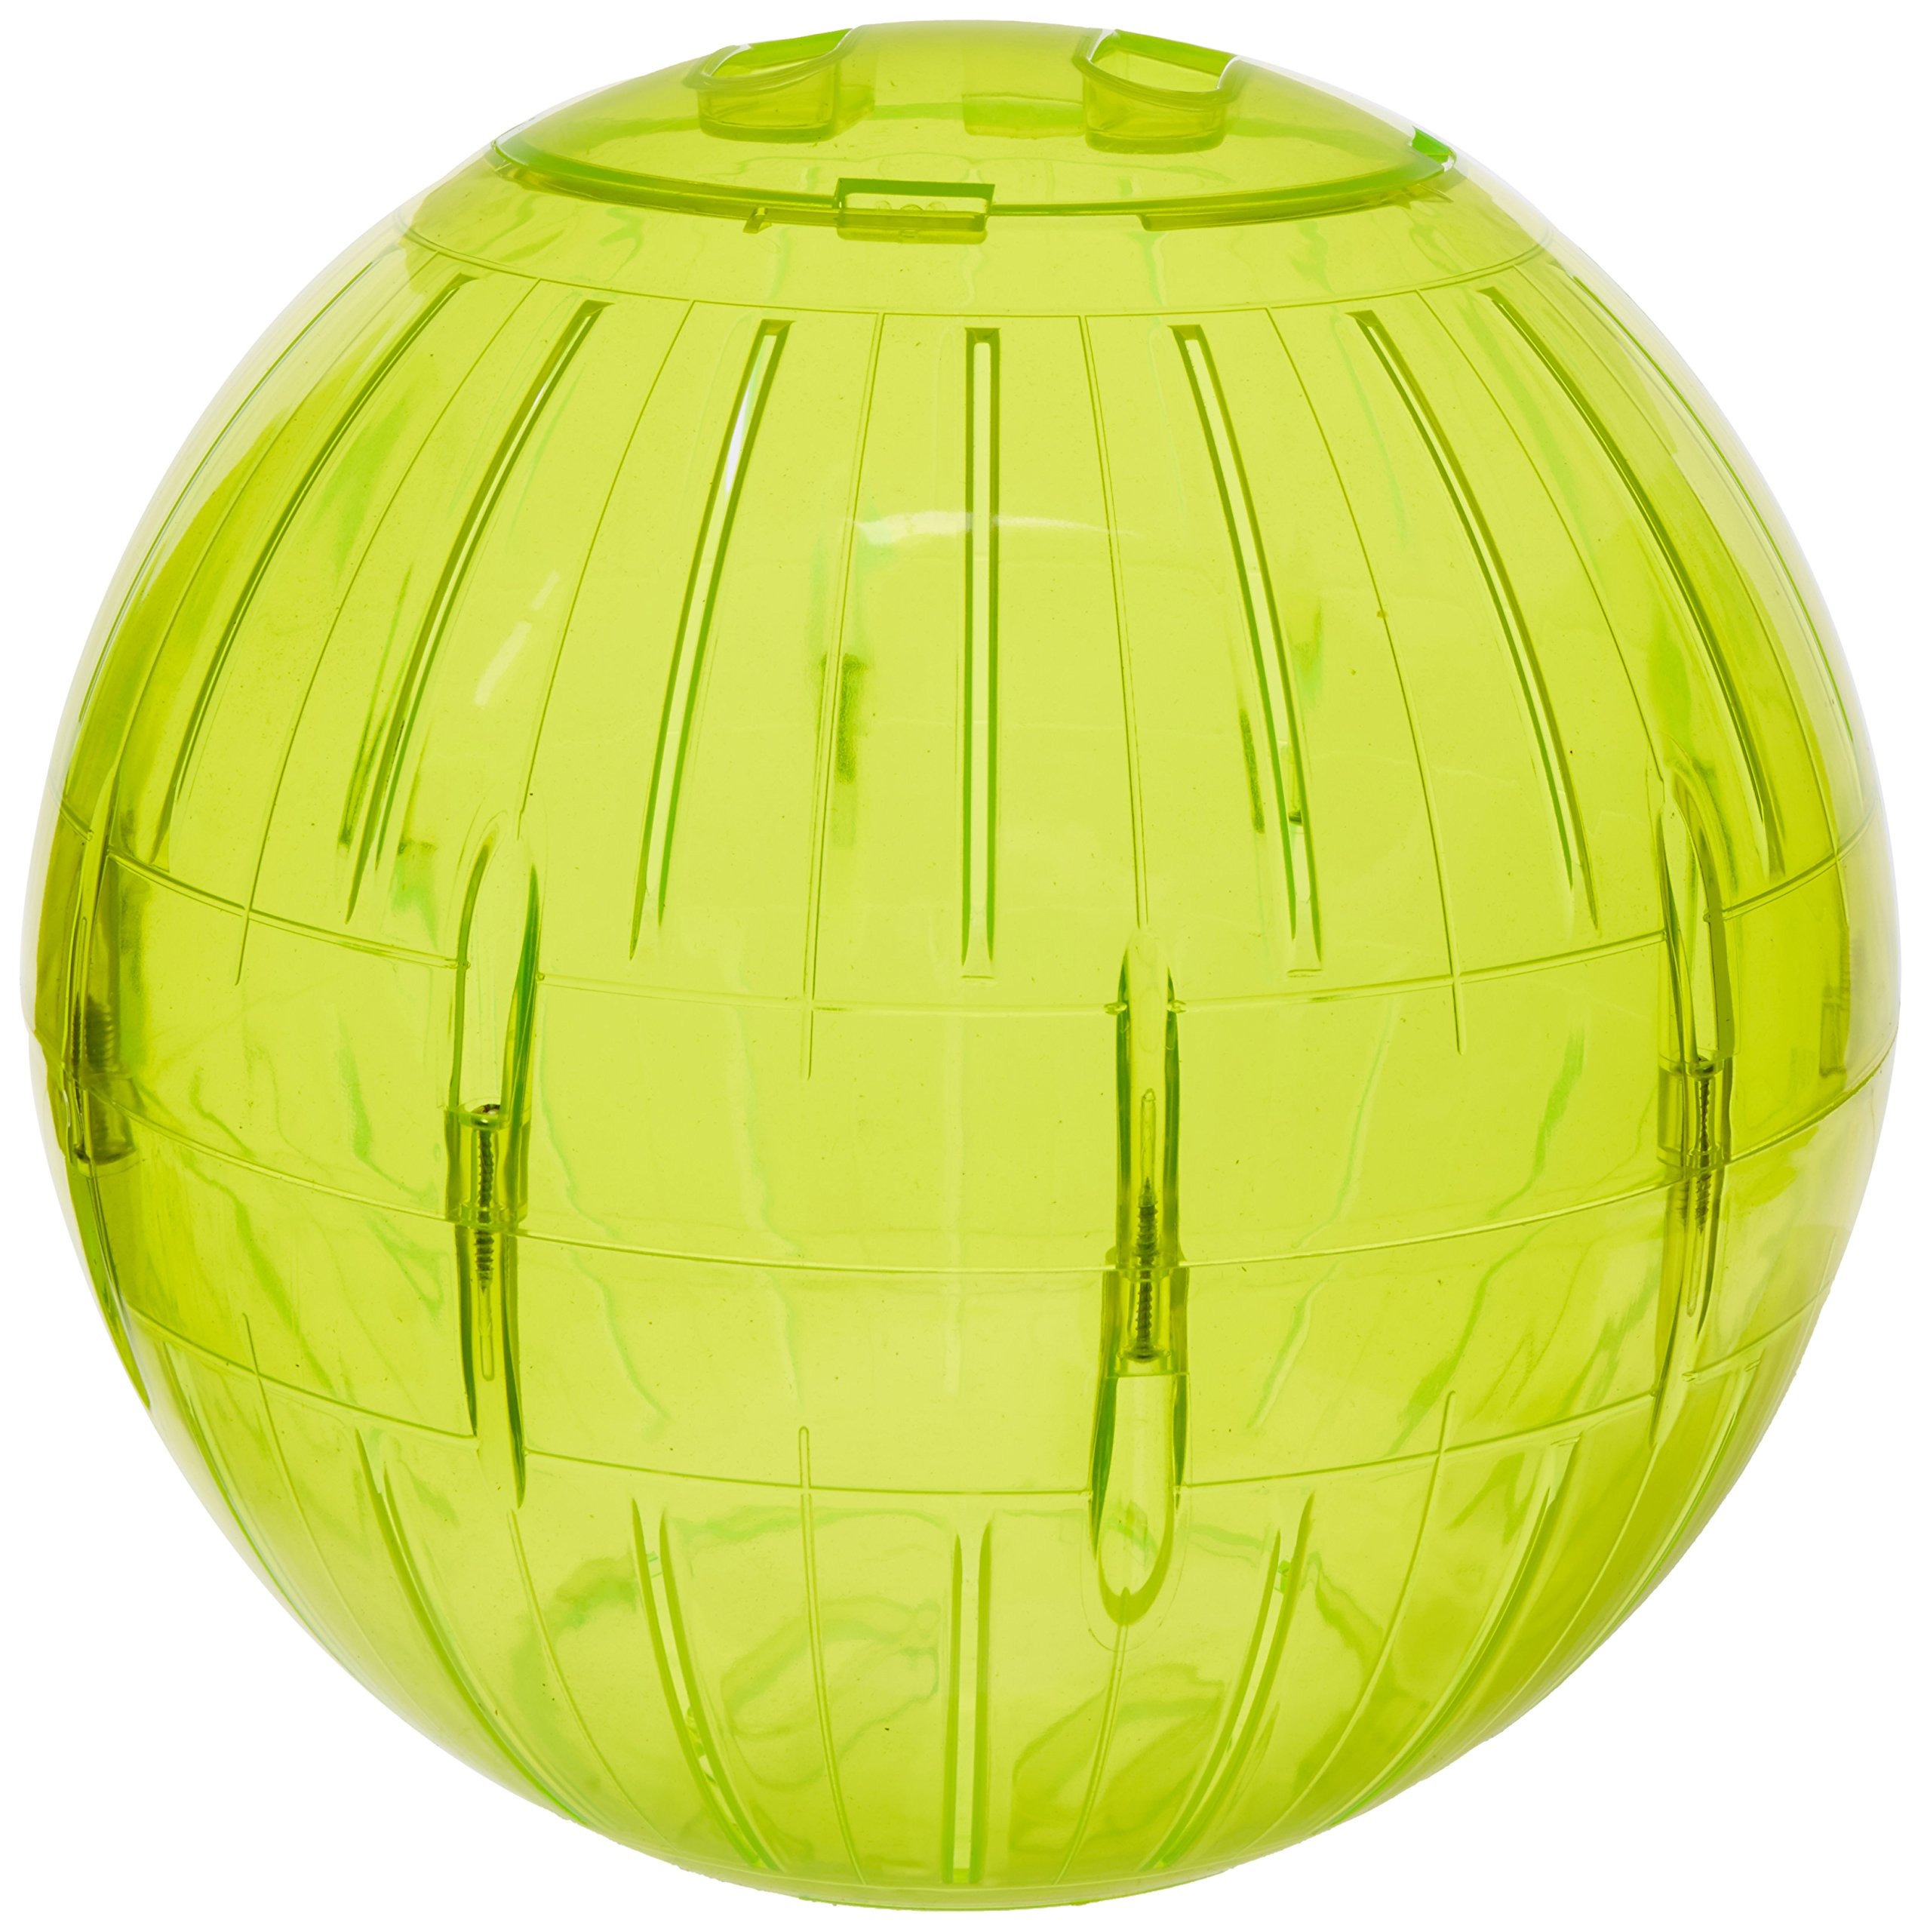 Lee's Kritter Krawler Giant Exercise Ball, 12-1/2-Inch, Colored by Lee's